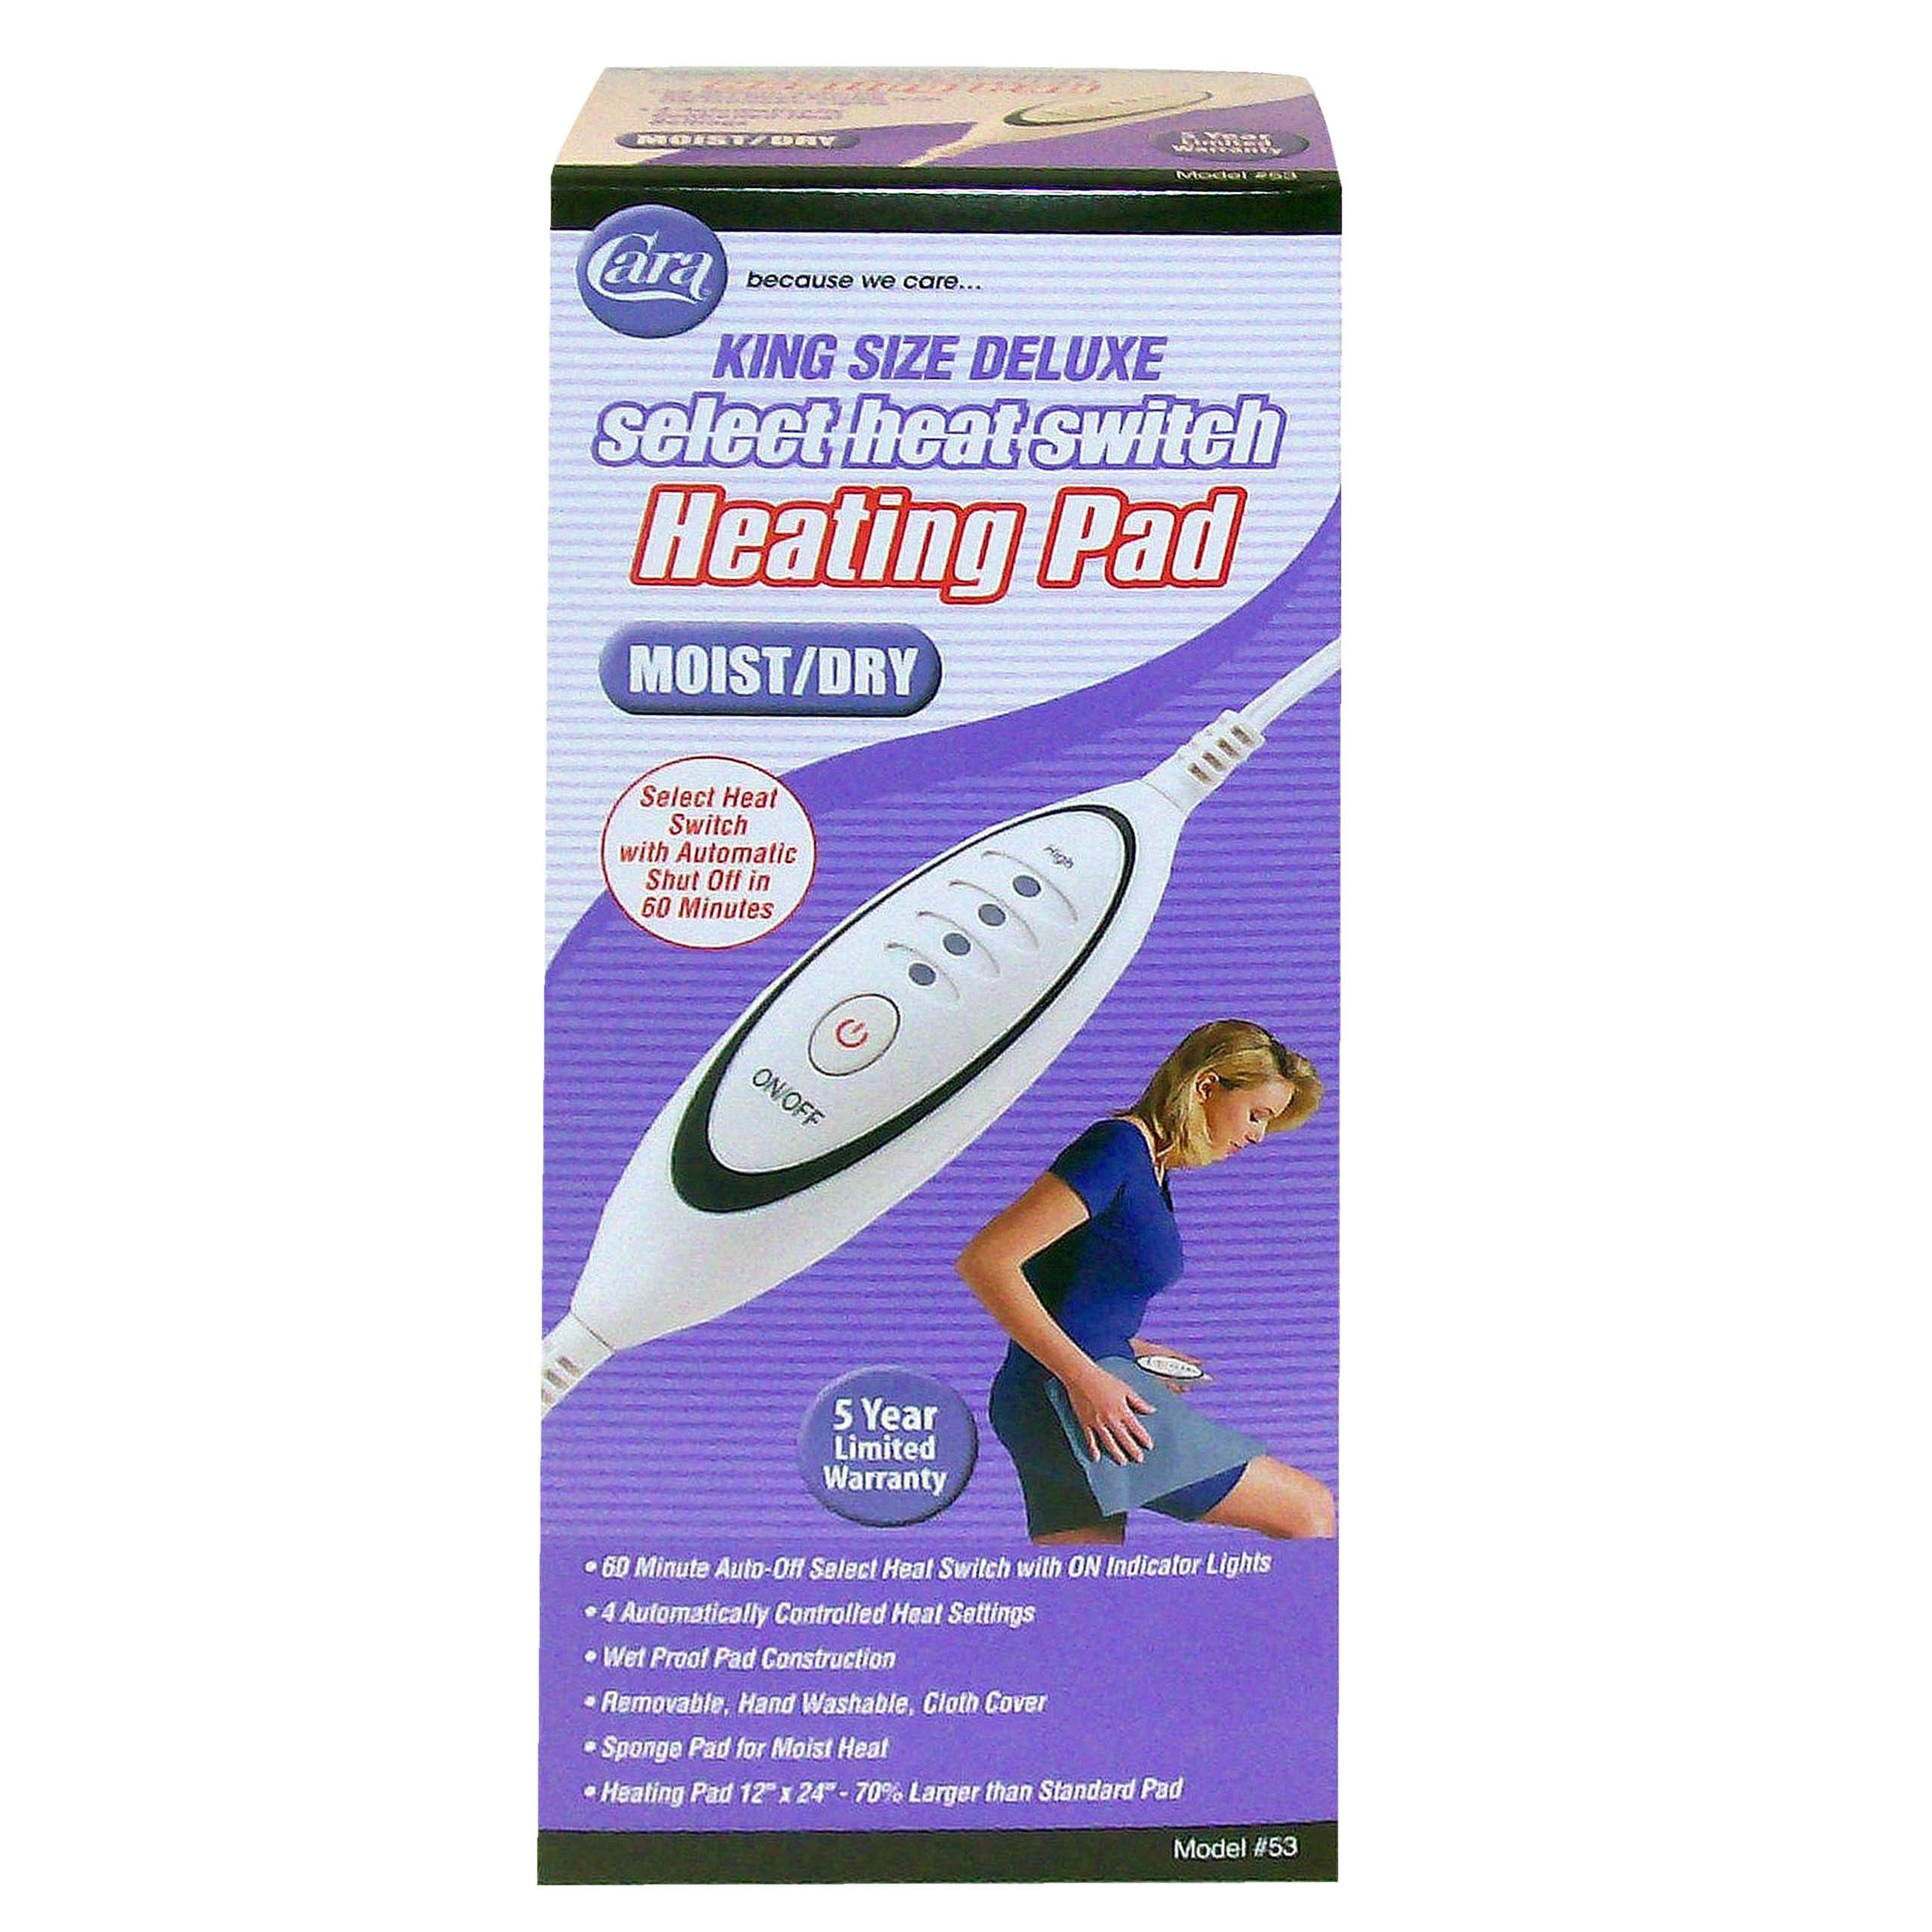 Heating Pad Moist/Dry King Size